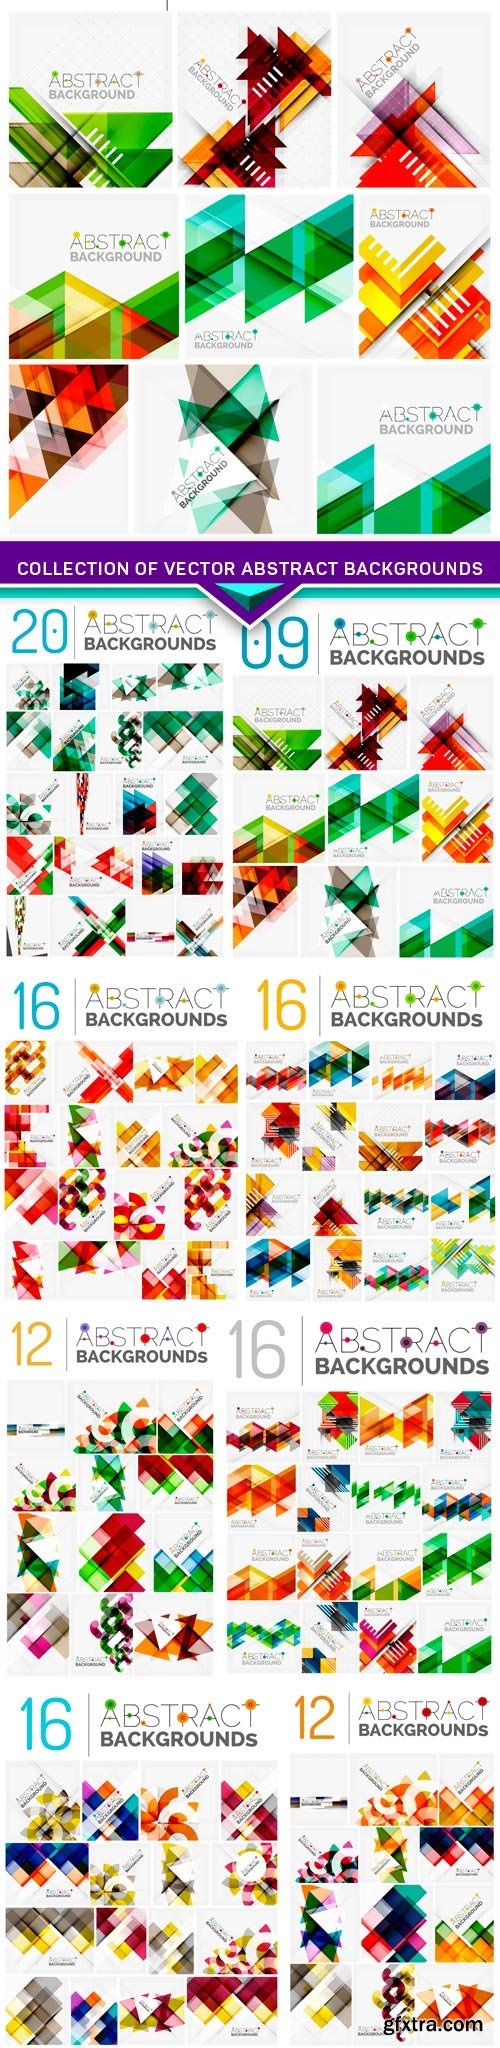 Collection of vector abstract backgrounds 8x EPS